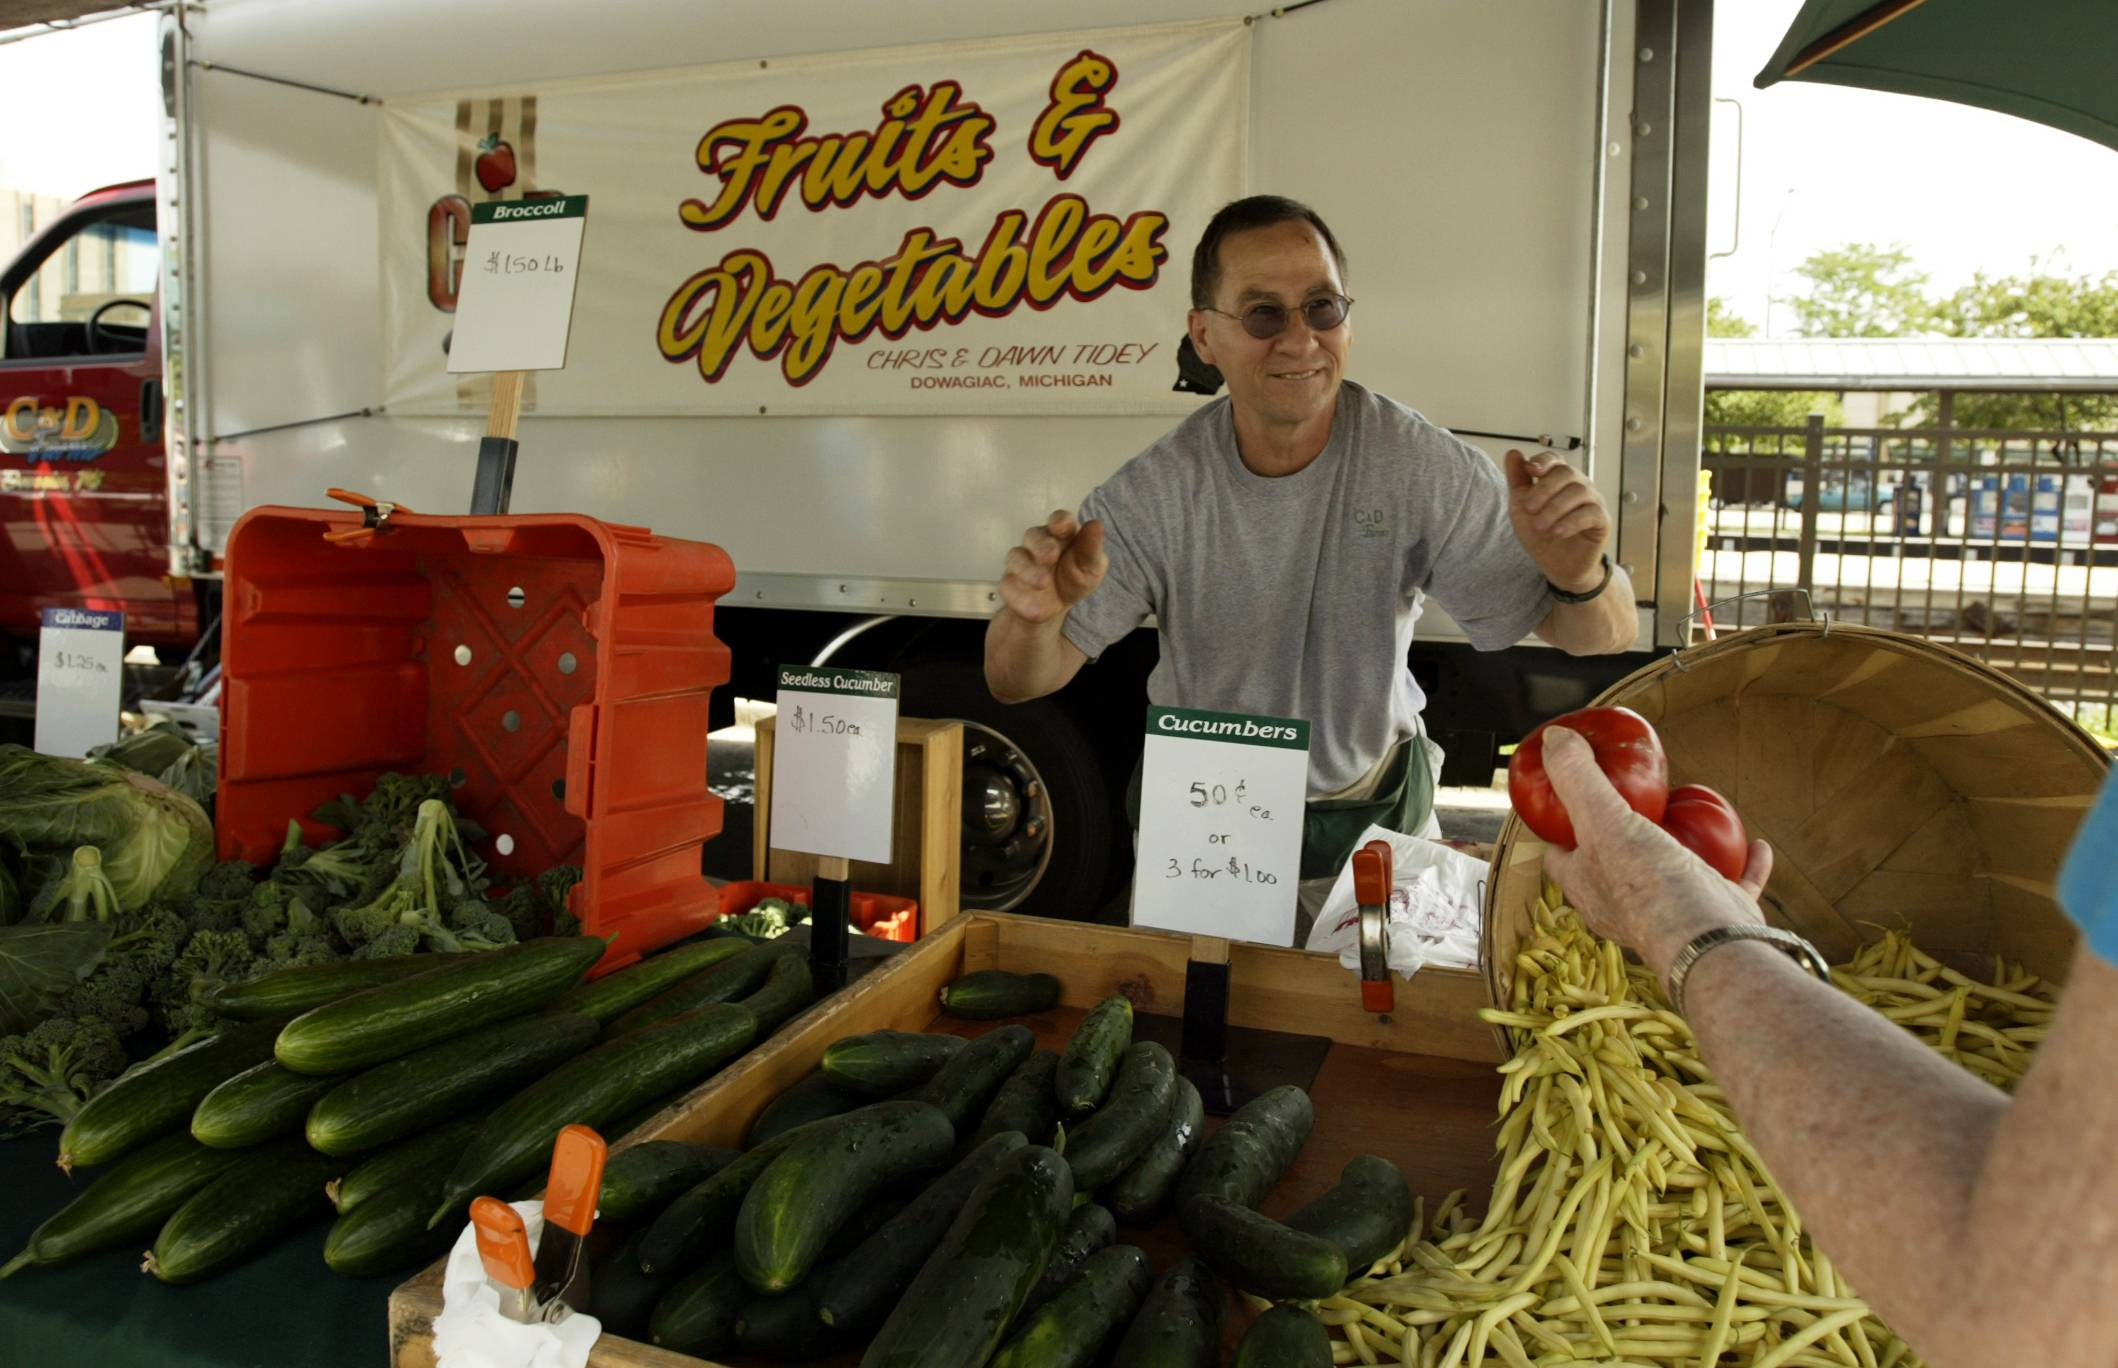 Des Plaines officials want to bring back downtown farmers market